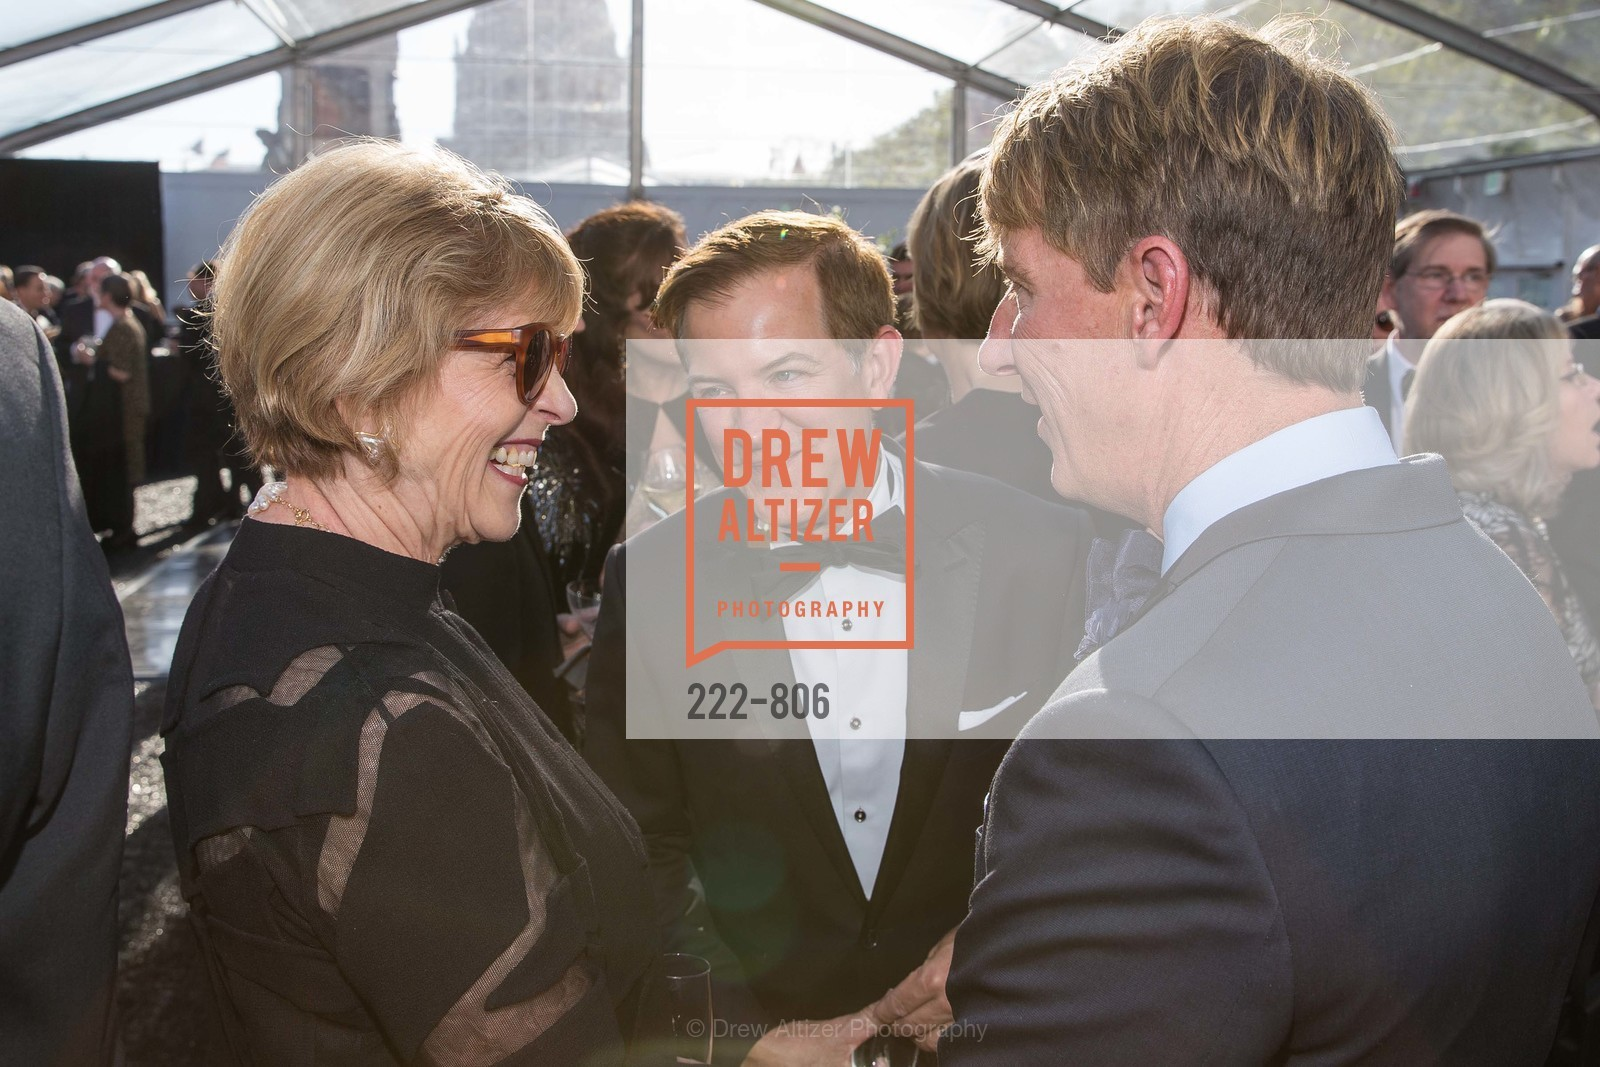 Dagmar Dolby, Trent Norris, Jack Calhoun, A.C.T. Gala Come Get Stranded, US, April 25th, 2015,Drew Altizer, Drew Altizer Photography, full-service agency, private events, San Francisco photographer, photographer california